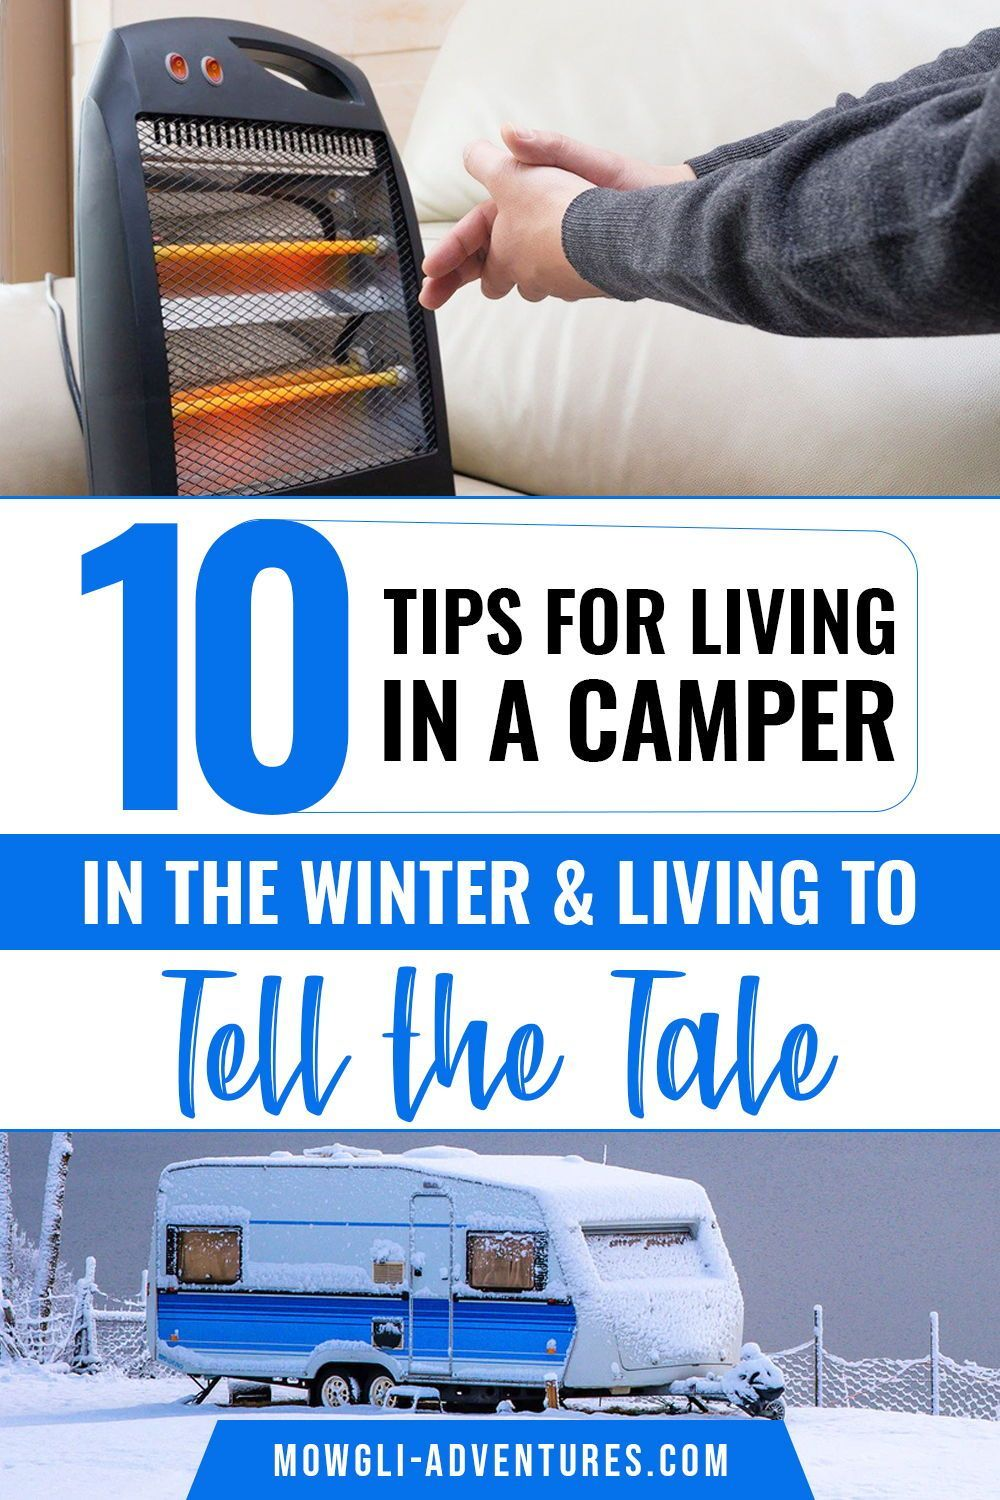 10 Tips for Living in a Camper in the Winter & Living to Tell the Tale